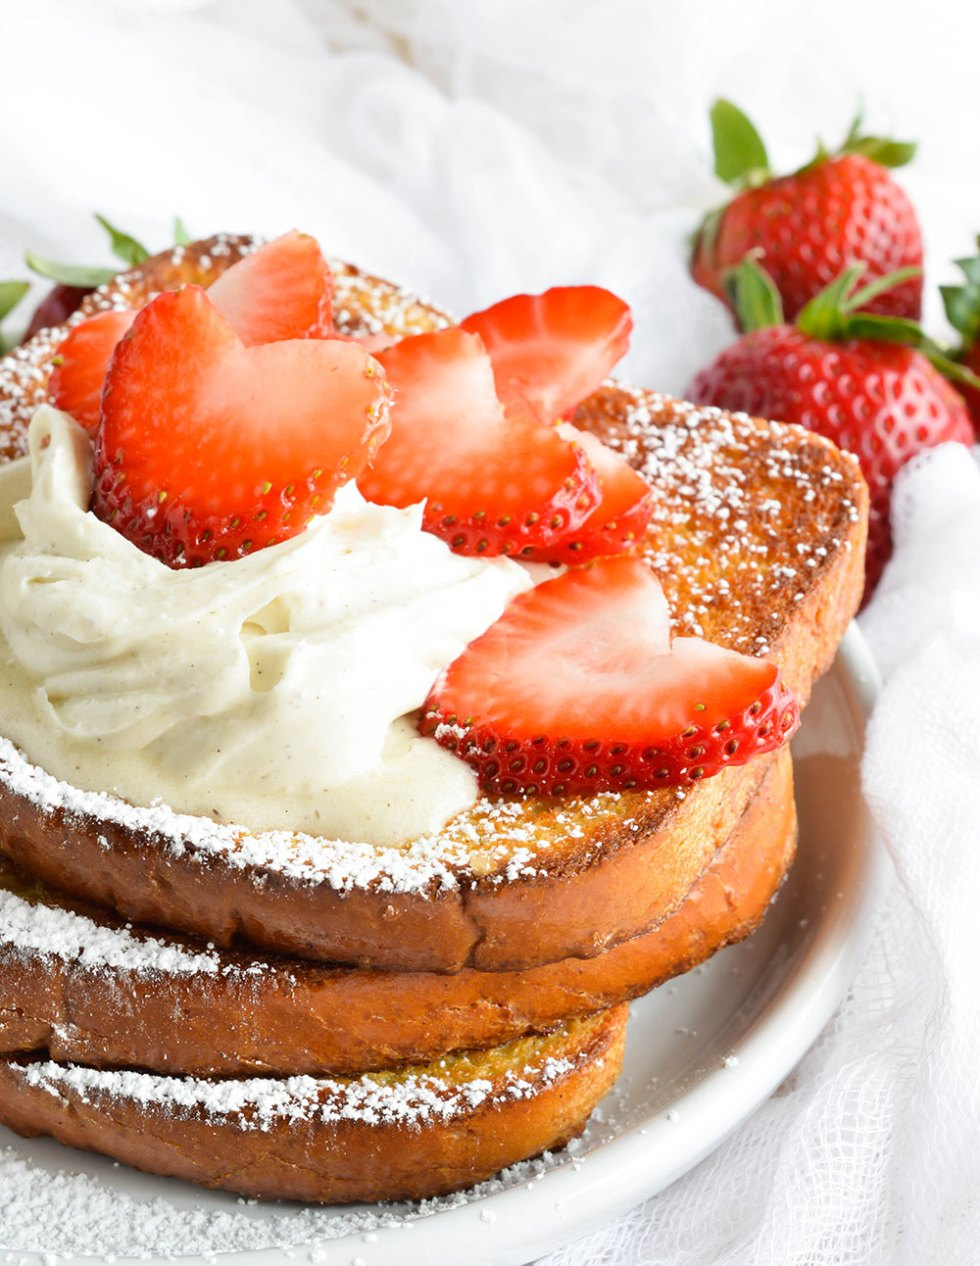 This Easy Baked French Toast Recipe is perfect for serving a crowd! Serve up this French Toast with Vanilla Mascarpone, Maple Syrup and Fresh Strawberries for the ultimate special occasion breakfast or brunch.